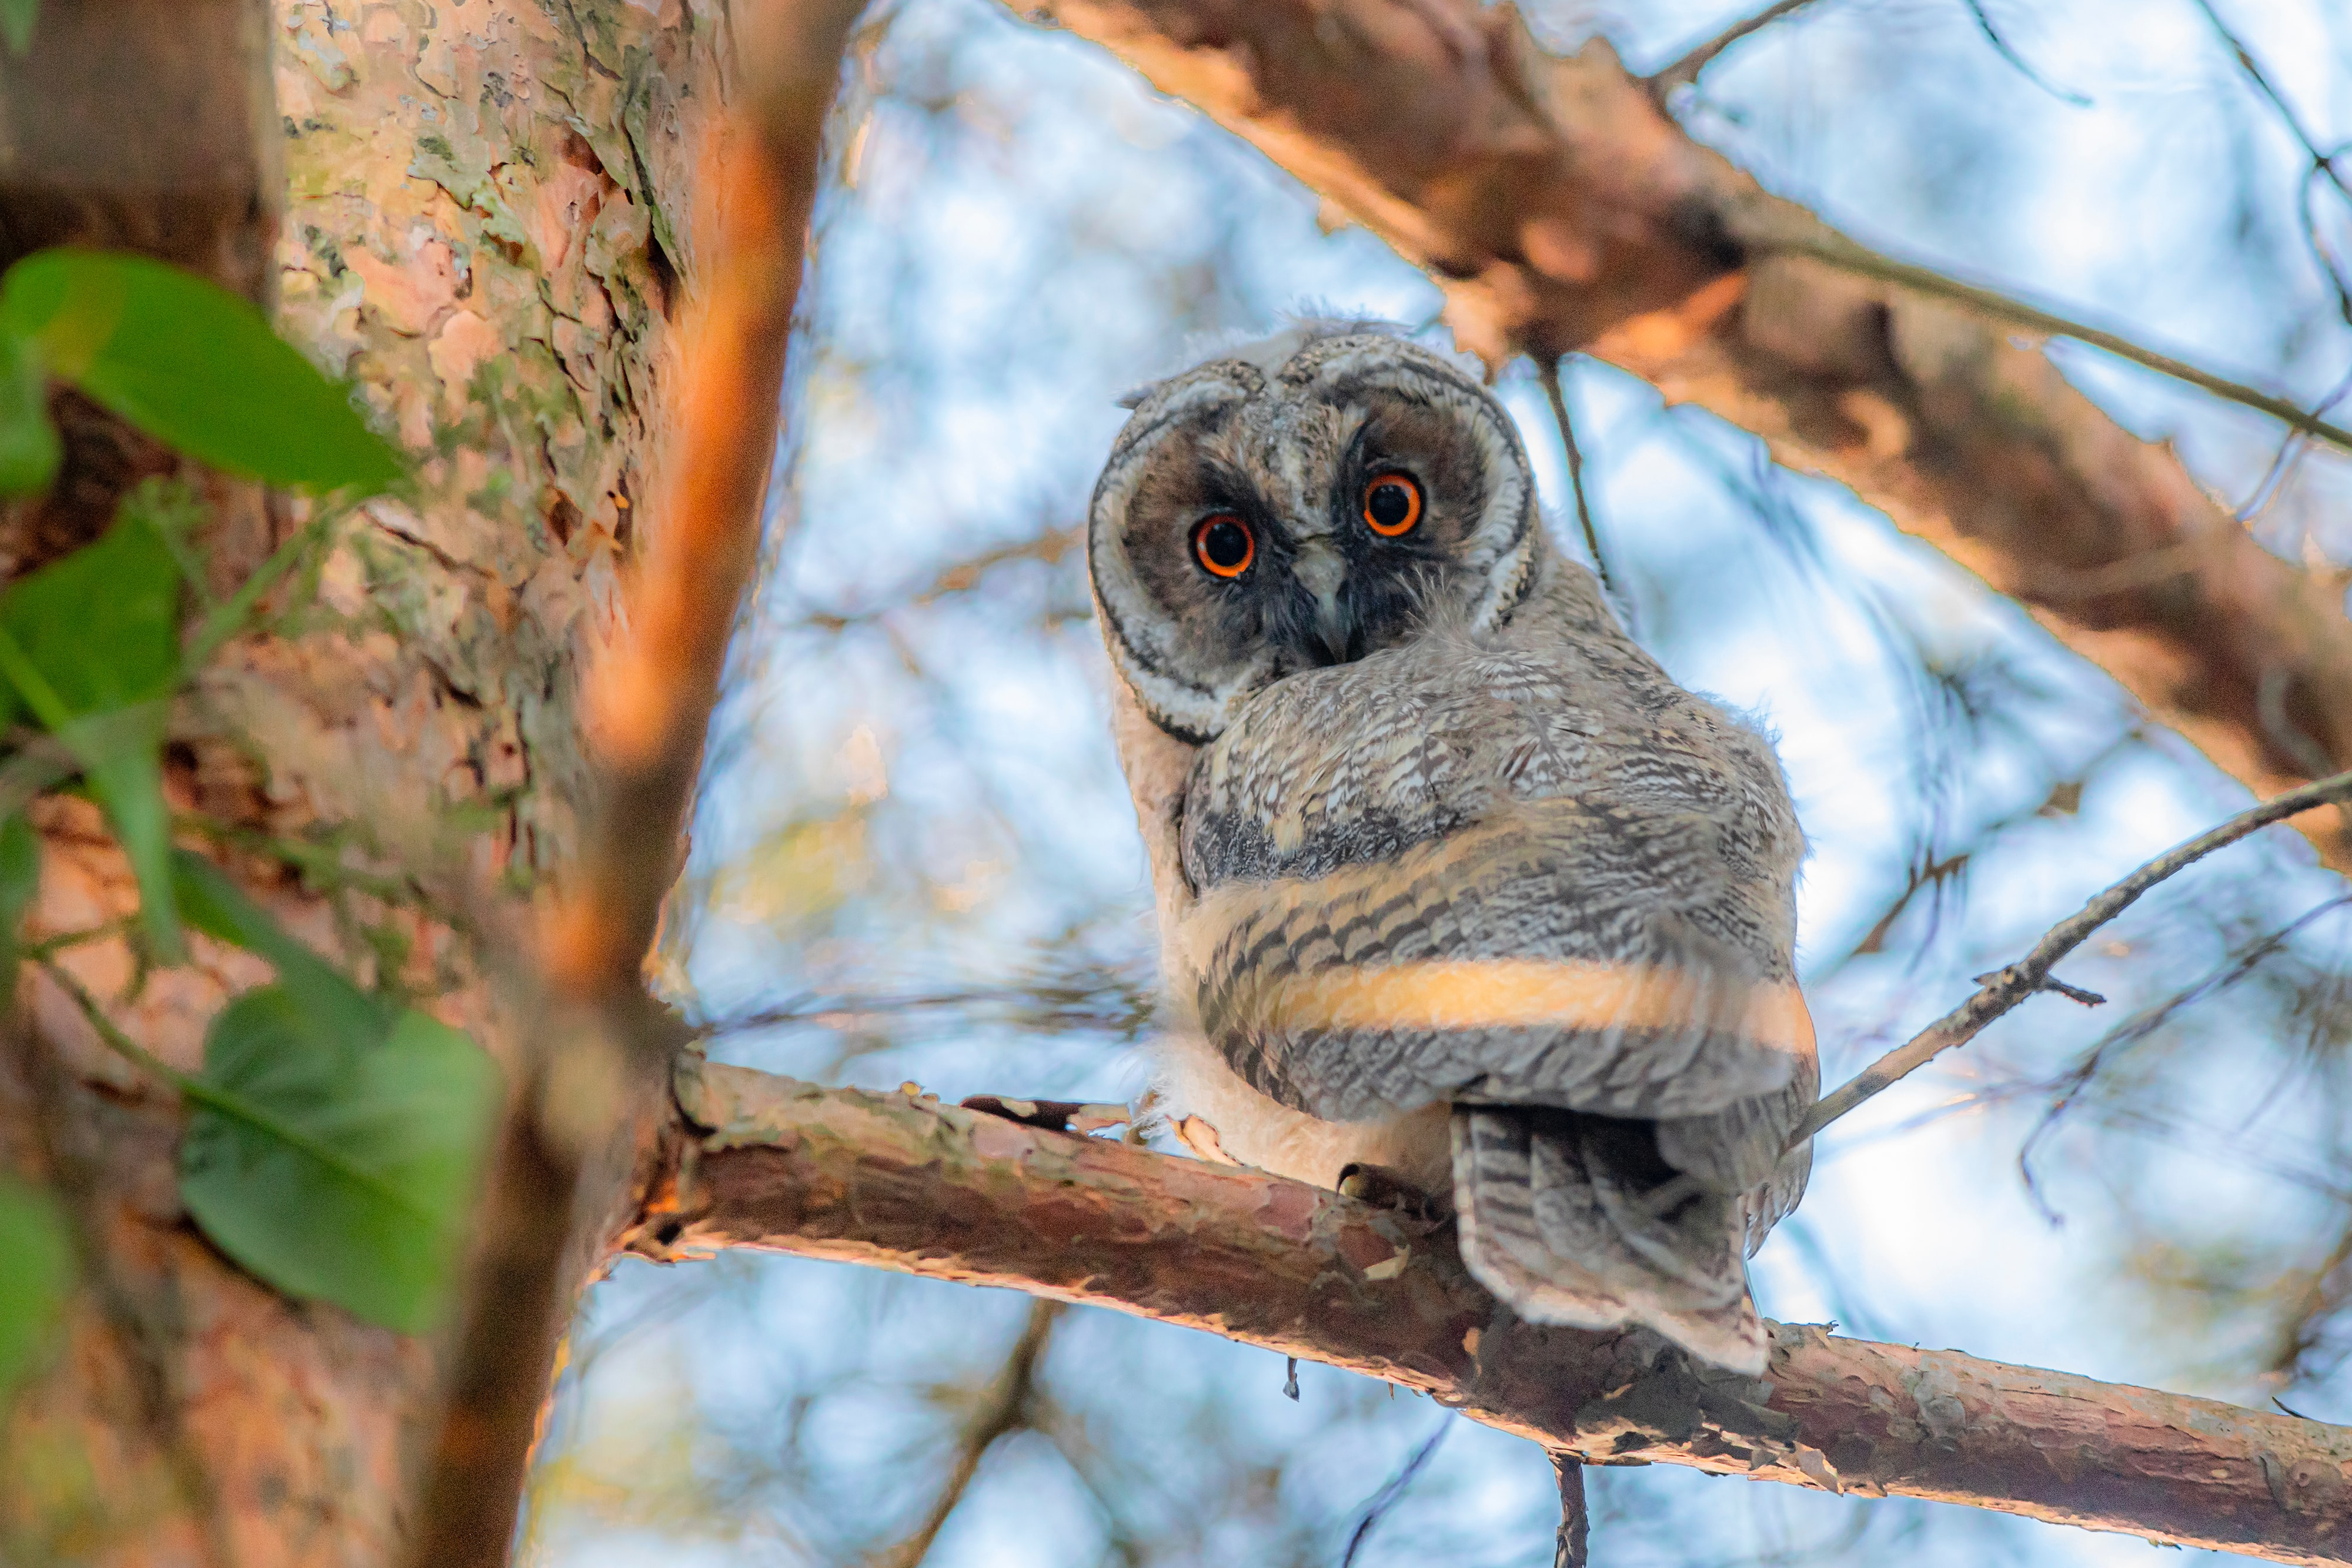 82951 download wallpaper Animals, Owl, Eagle Owl, Bird, Eyes, Sight, Opinion, Branch screensavers and pictures for free